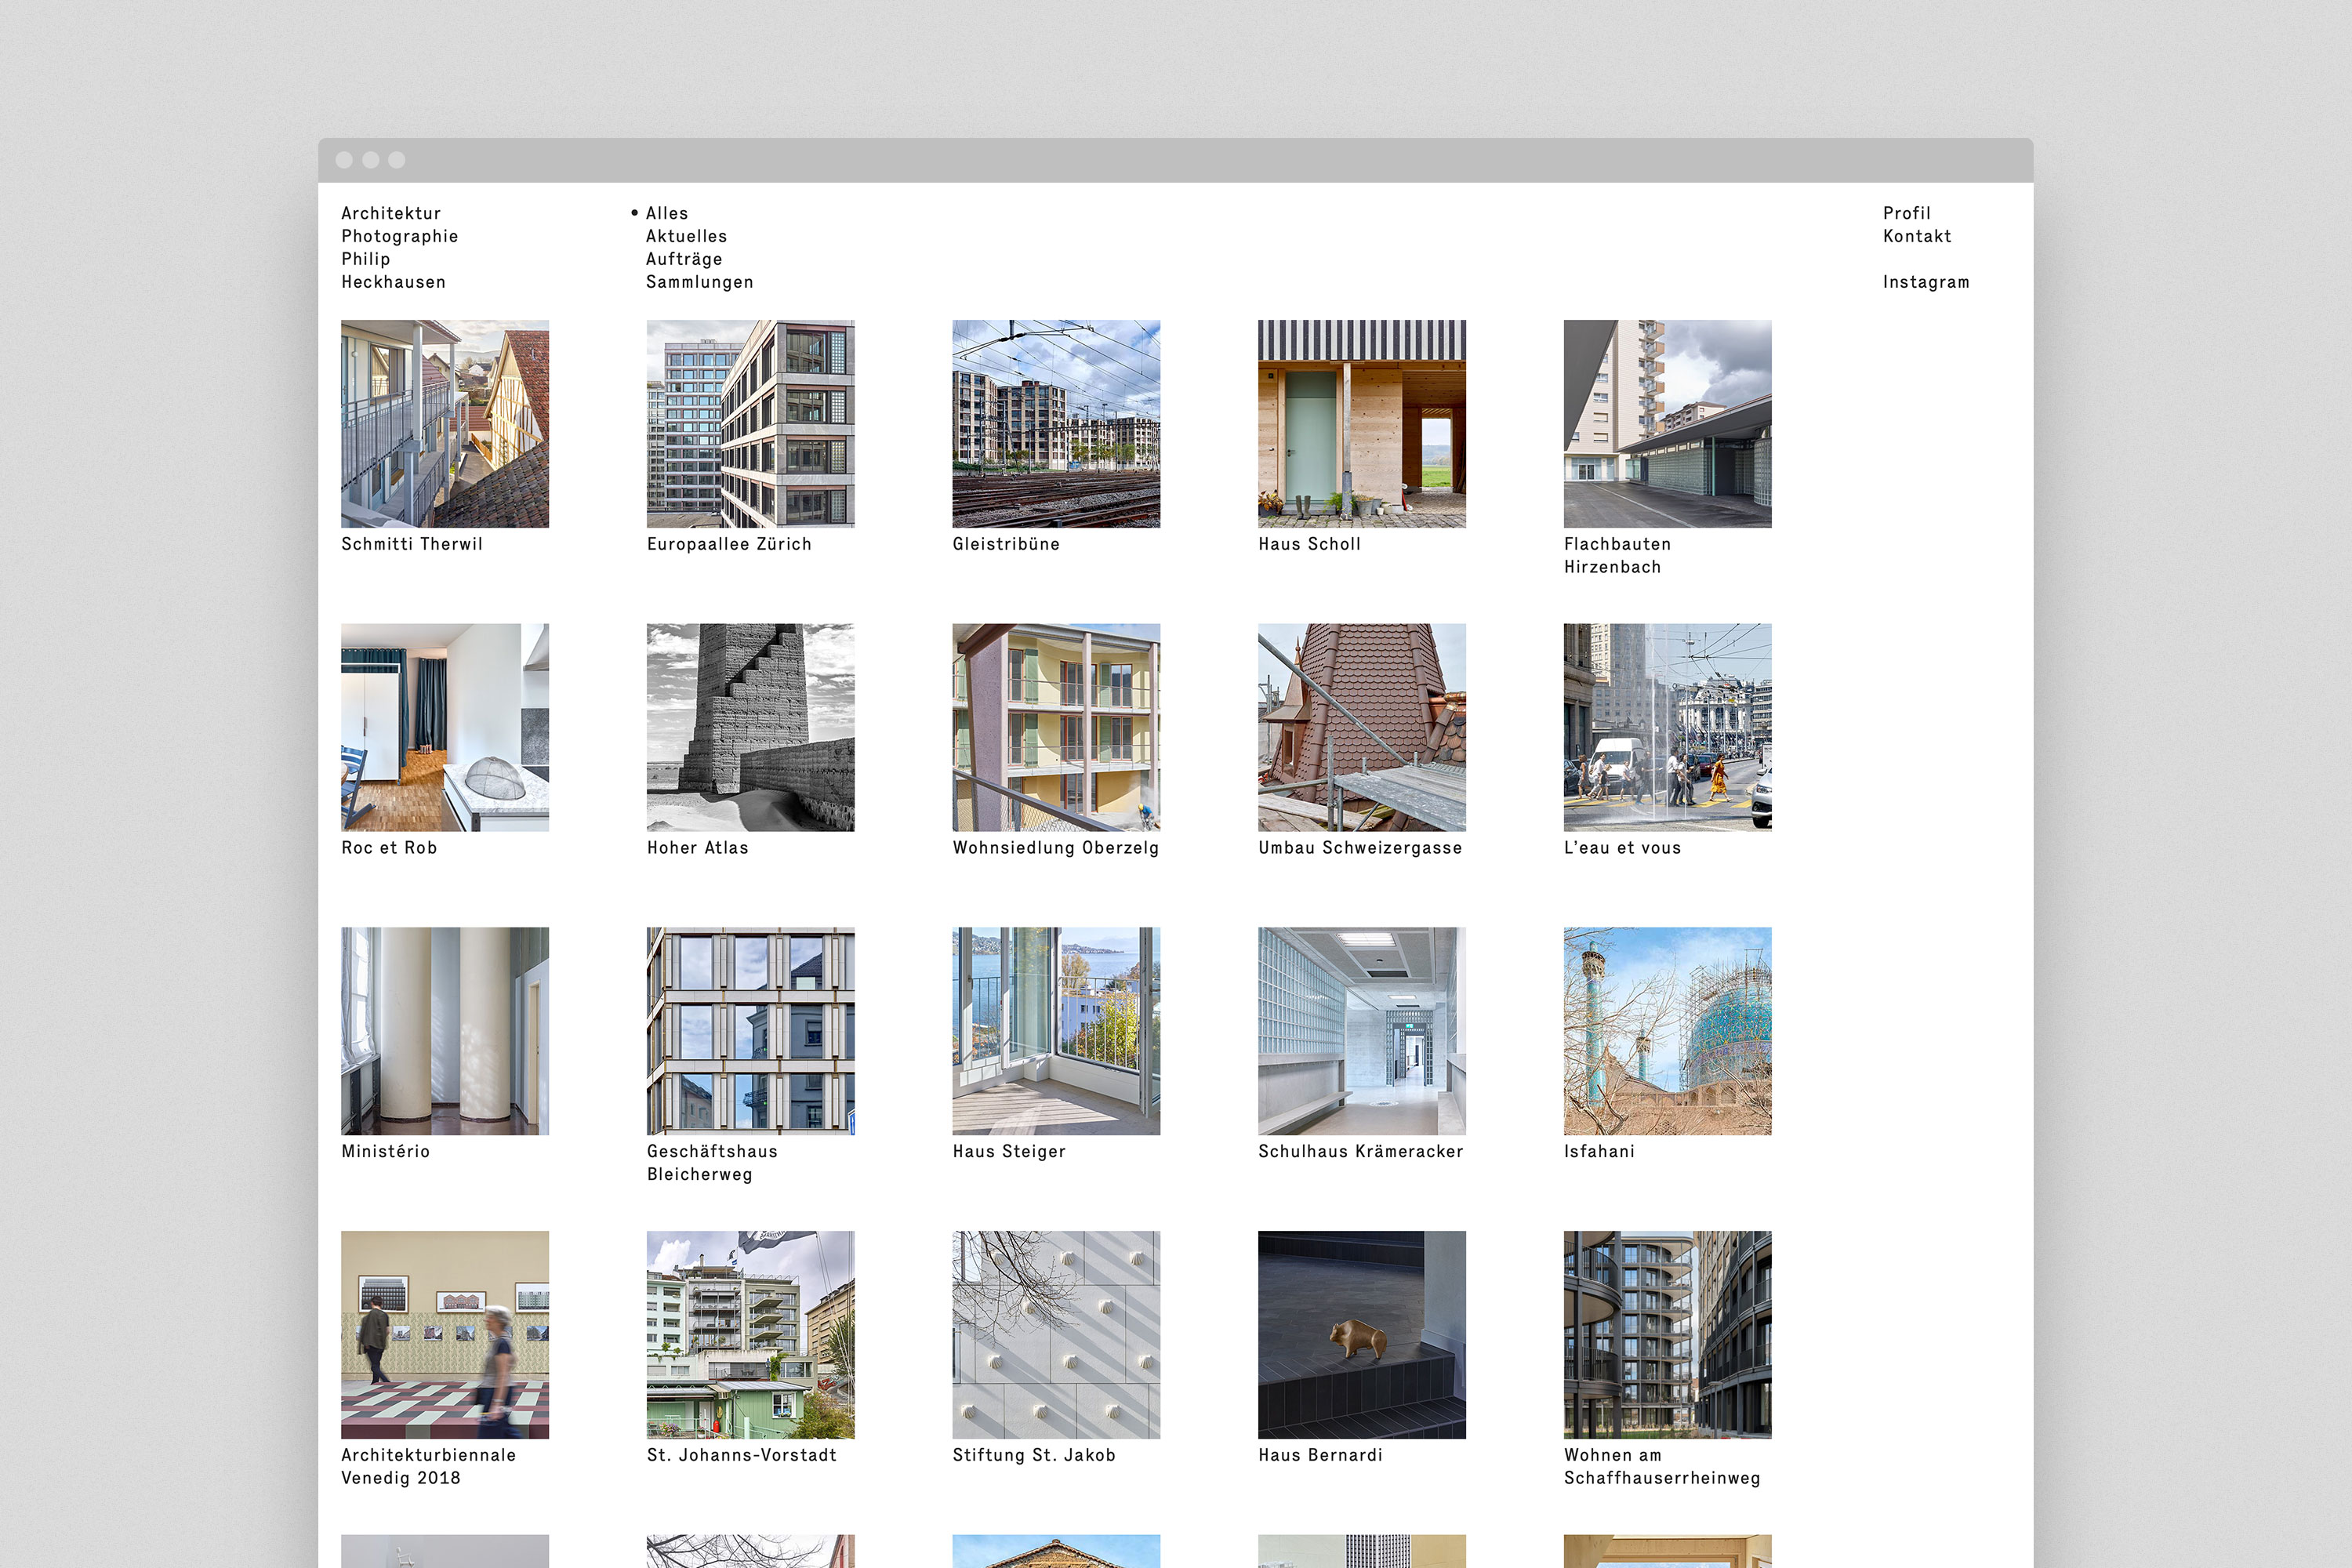 Architektur Photographie Philip Heckhausen Website 3